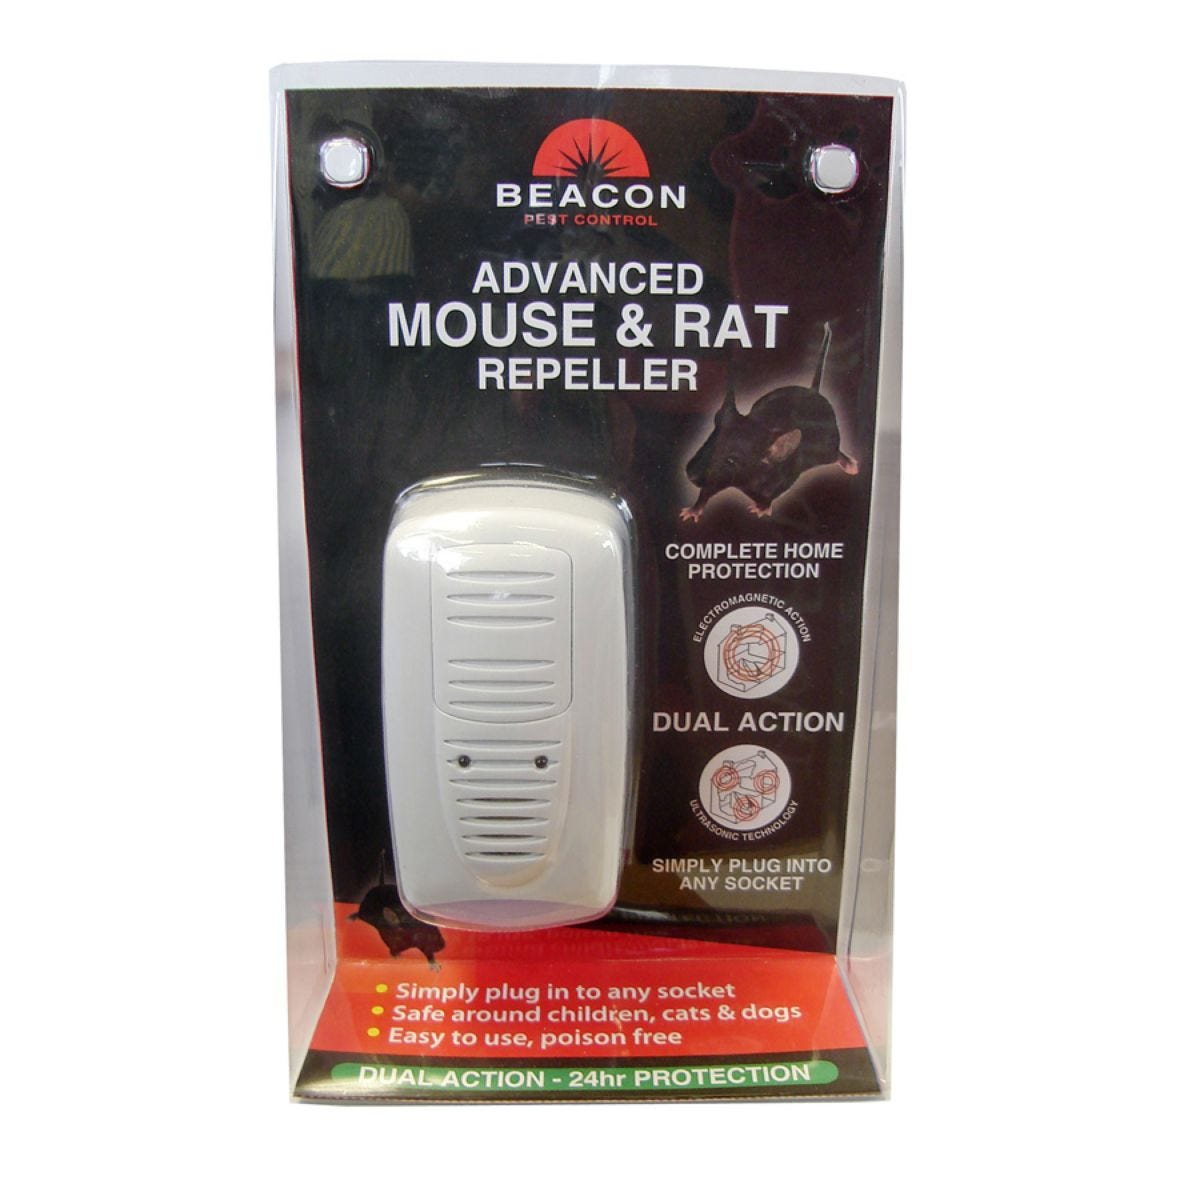 Rentokil Beacon Advanced Mouse and Rat Repeller